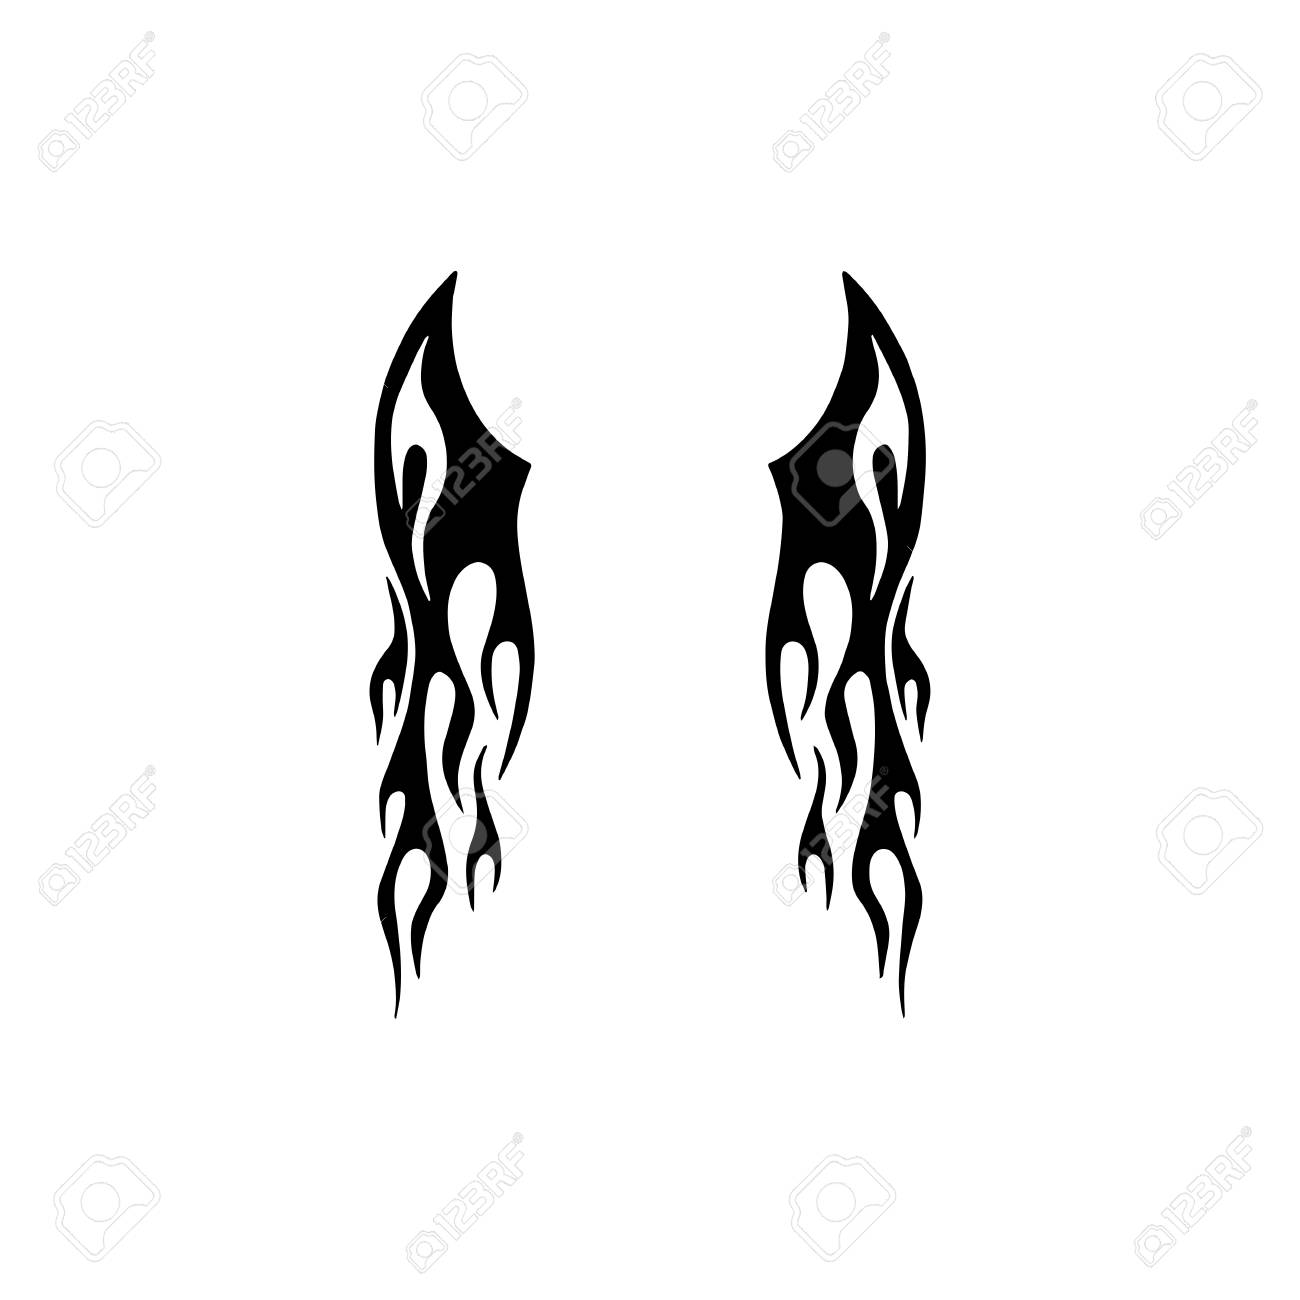 Tribal Wing Tattoo Design Royalty Free Cliparts Vectors And Stock